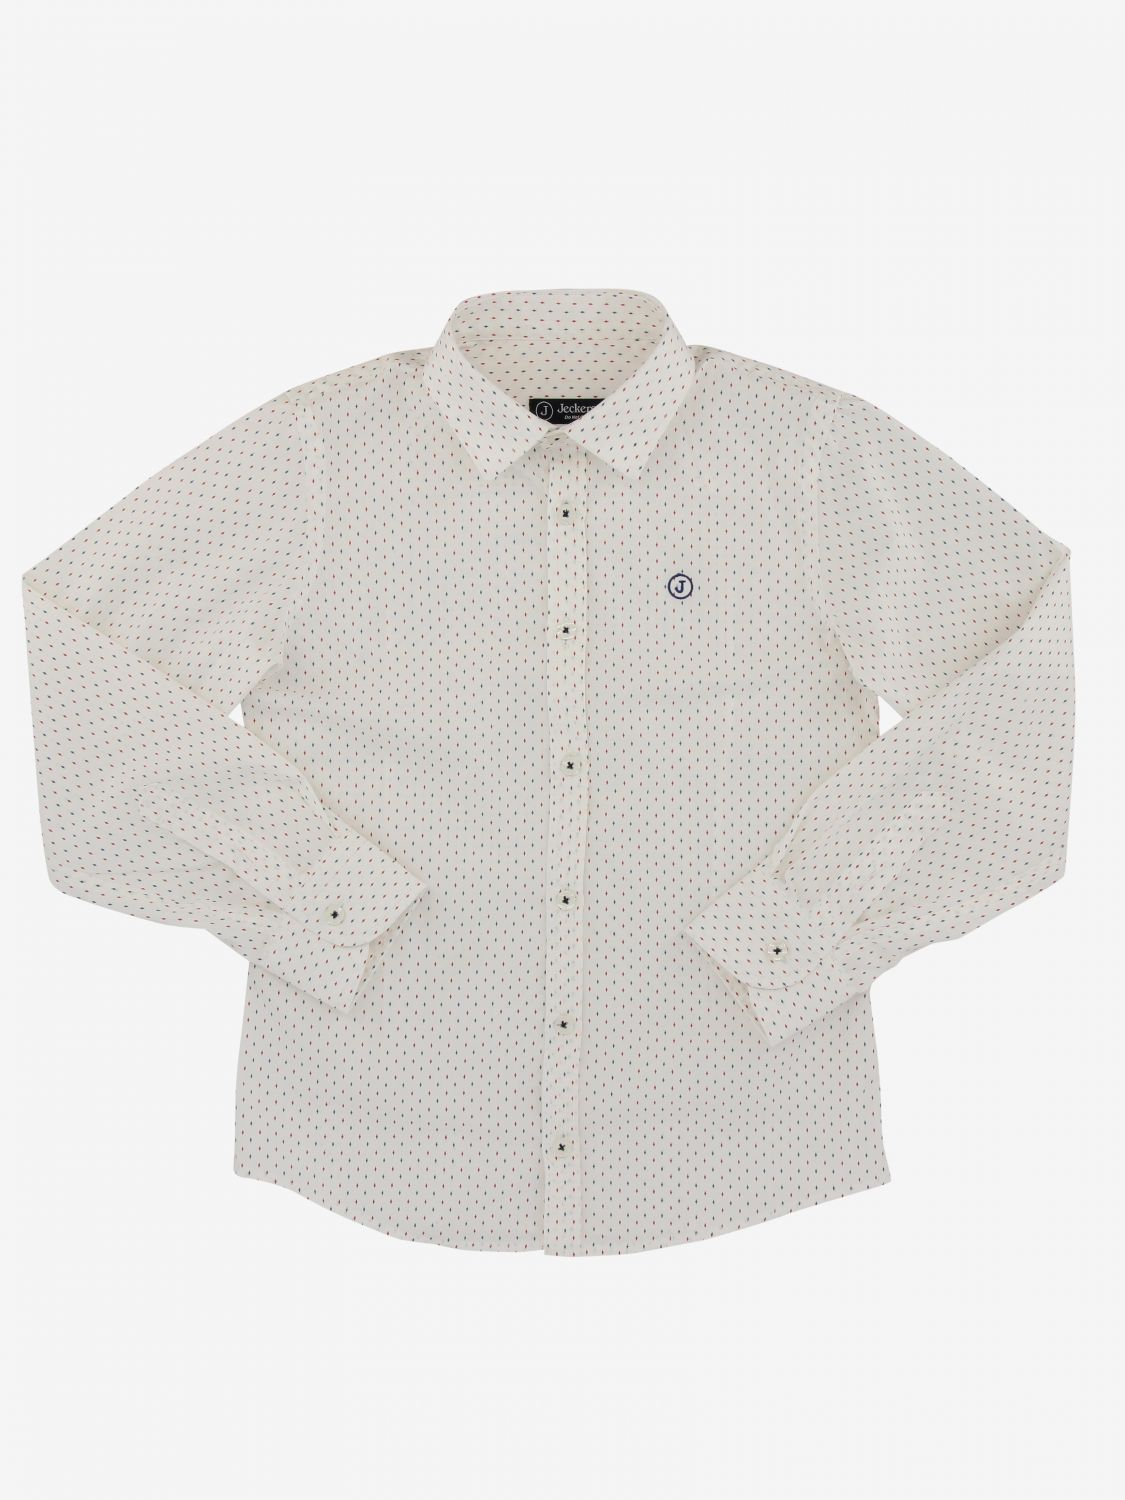 Shirt kids Jeckerson white 1